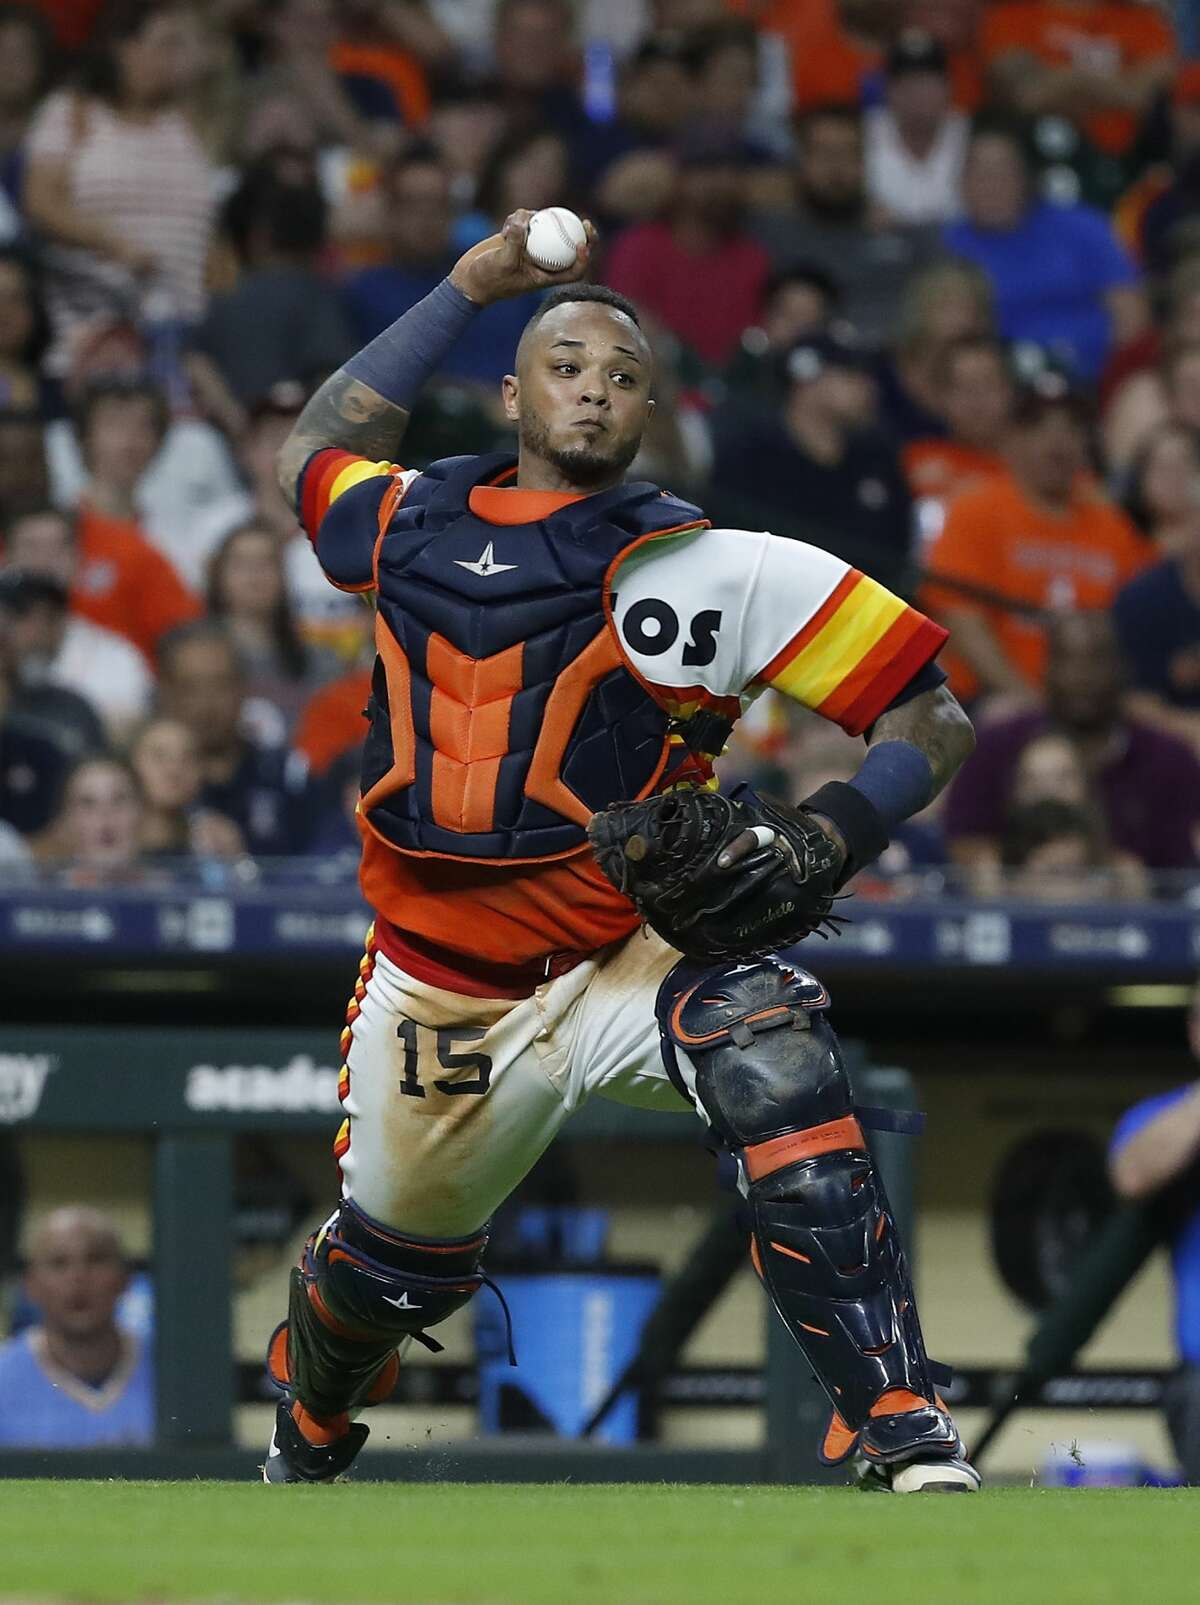 Houston Astros catcher Martin Maldonado (15) makes the throw to first base as Seattle Mariners Dee Gordon bunt grounded out during the eighth inning of an MLB game at Minute Maid Park, Friday, August 10, 2018, in Houston.